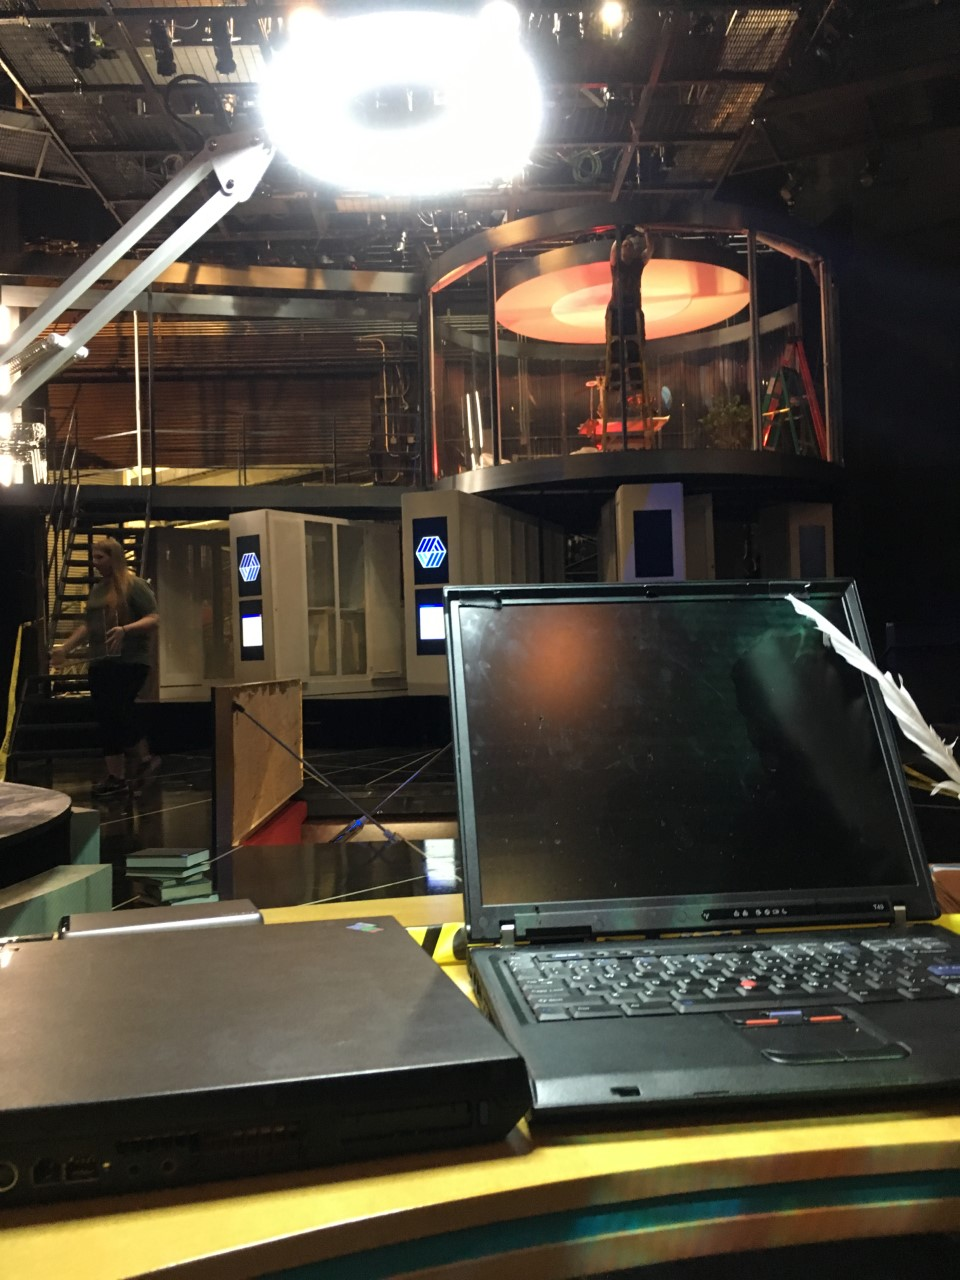 One of the desks featured in 'Life of Galileo' waits downstage for placement while our tech crew readies other scenic elements for the evening's tech rehearsal.